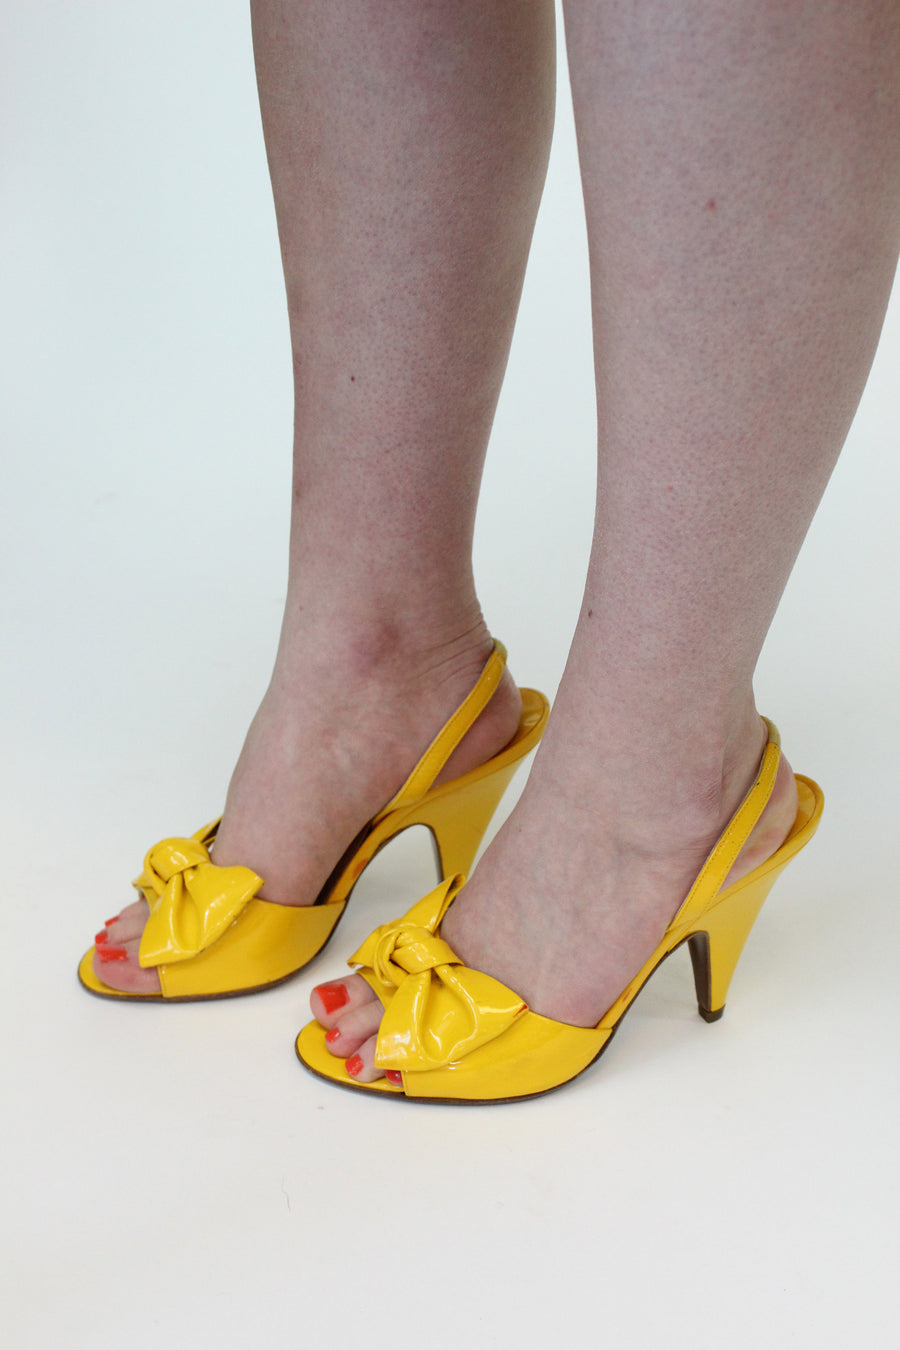 1980s Walter Steiger shoes size 7 us | bow slingbacks | new in